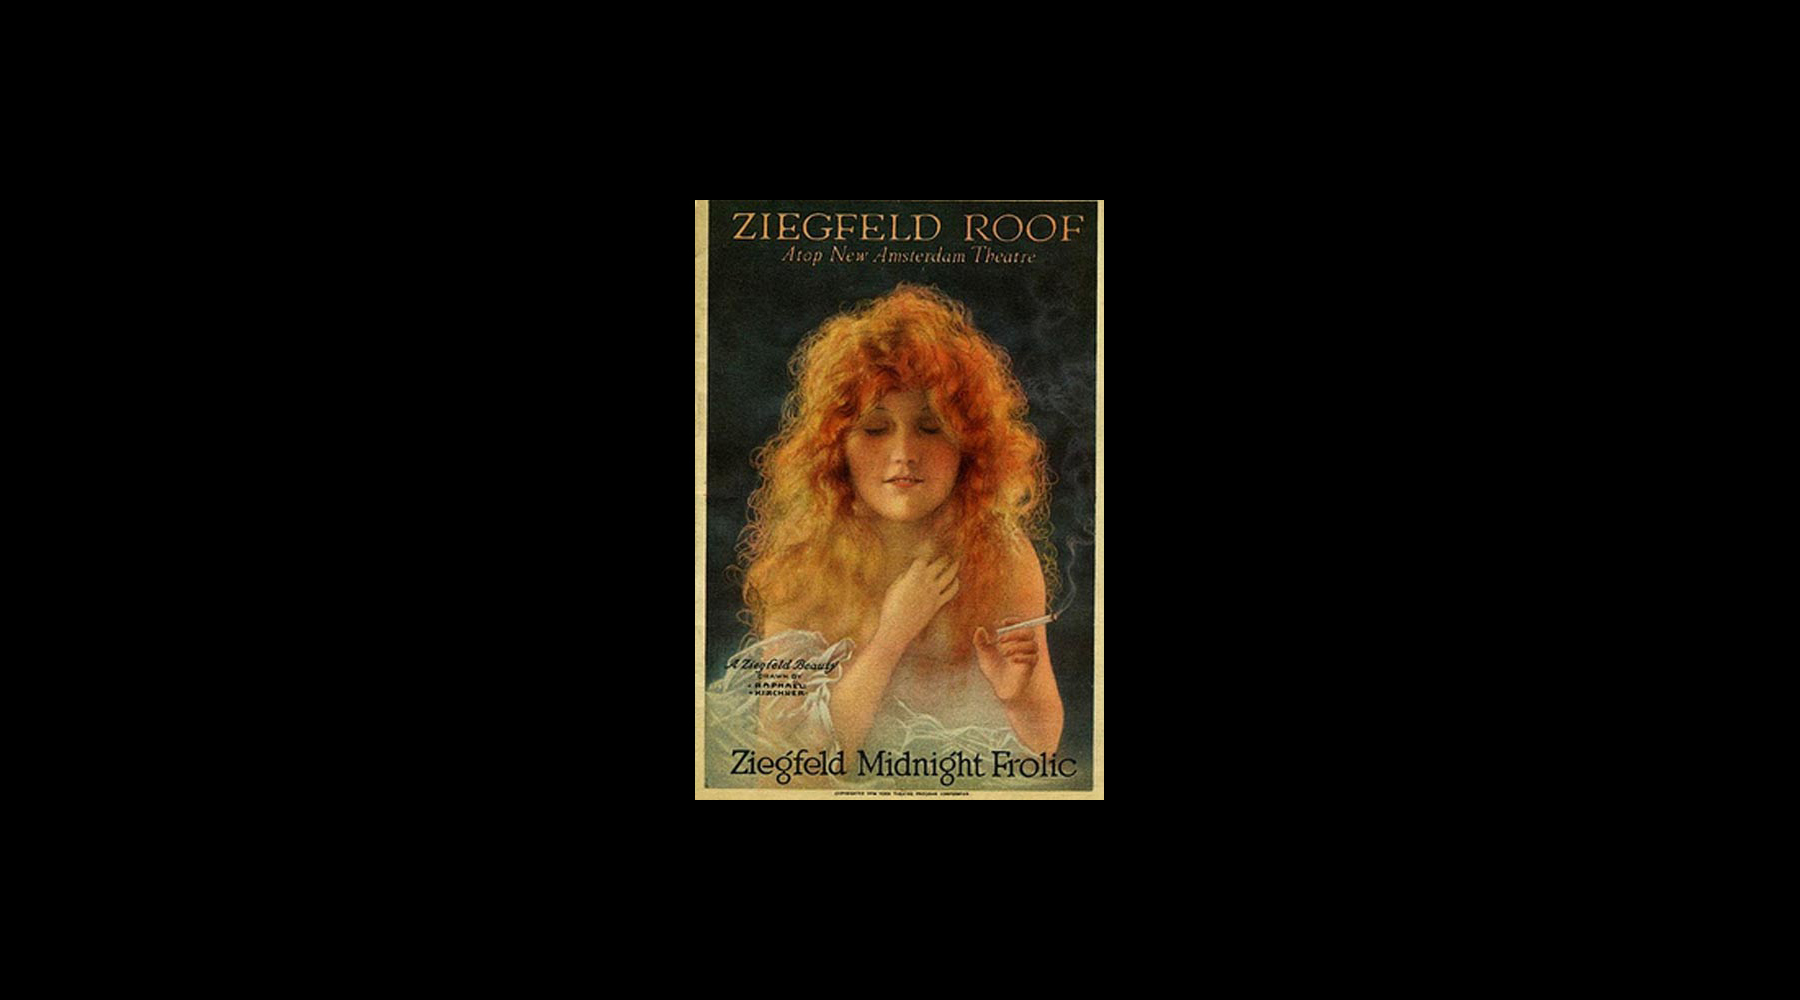 Olive joined Florenz Ziegfeld's Midnight Frolic in 1916 and began an affair with him.